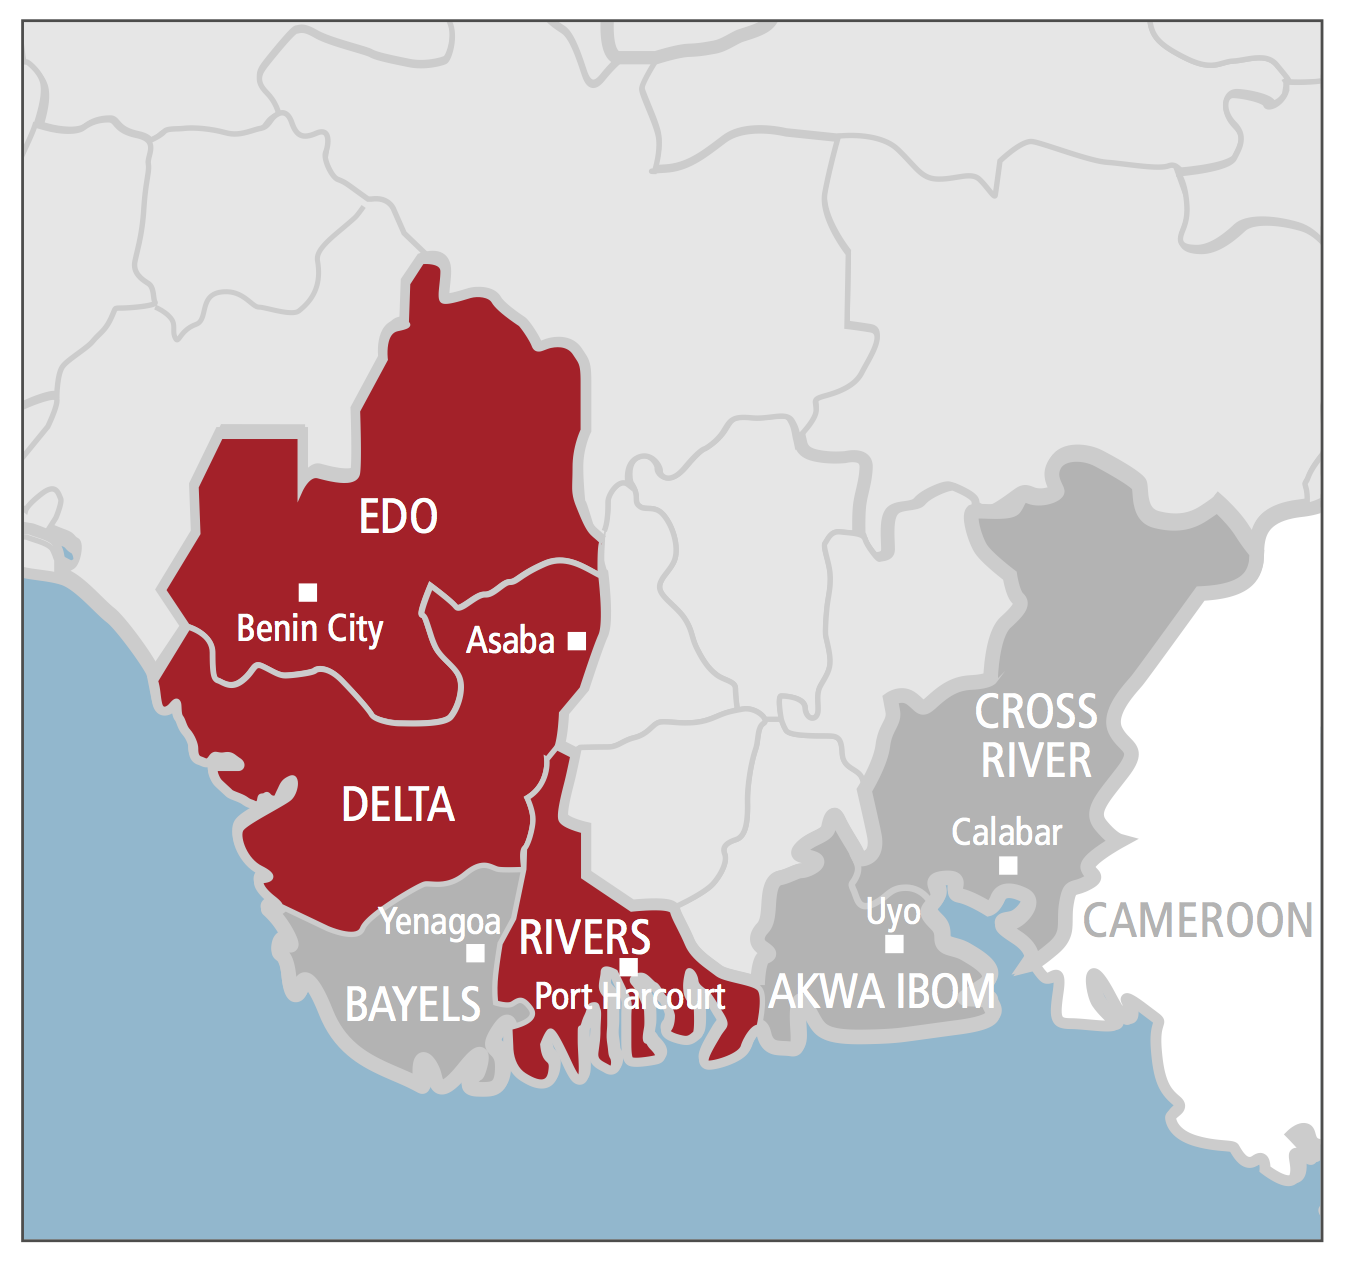 map of delta state nigeria with The Violent Road Nigeria South South on Anambra Zip Code besides Nigerian State Governors together with Free Nigeria Maps likewise Delta State Zip Code further Delta Plaza Hotel Delta.